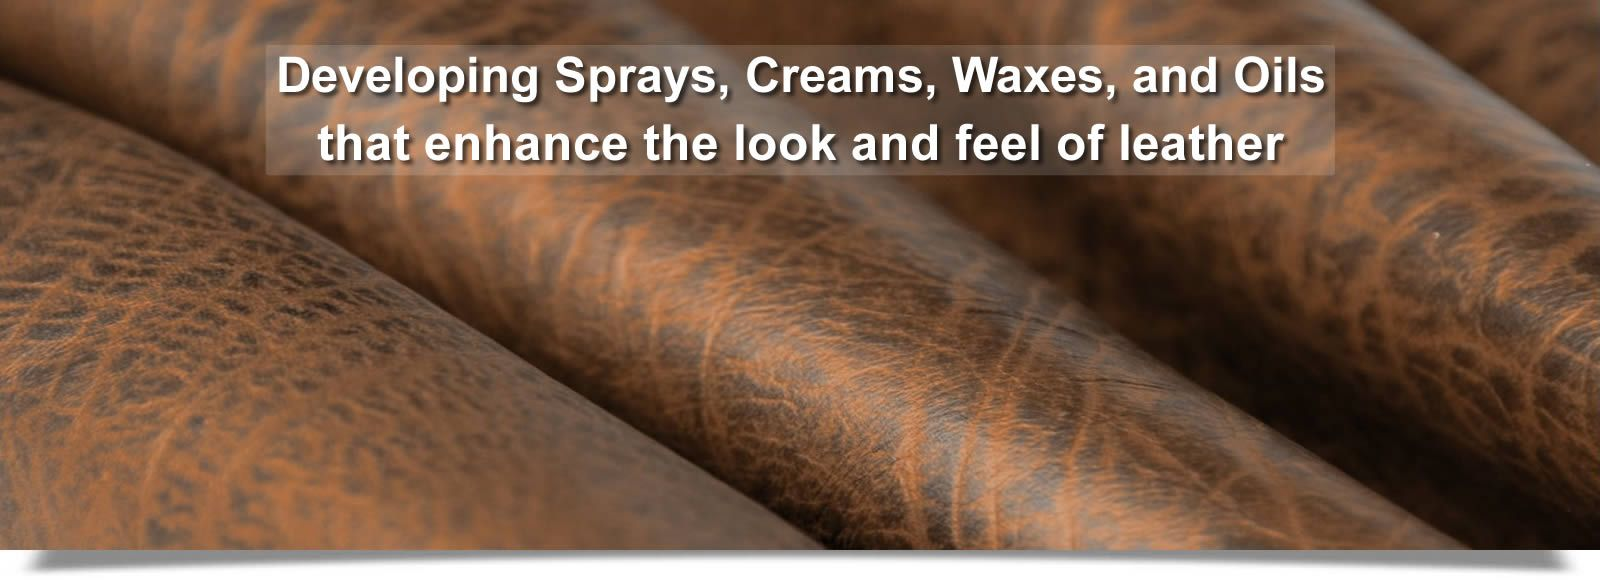 Prime Leather Finishes develops sprays, creams, waxes and oils that enhance the look and feel of leather